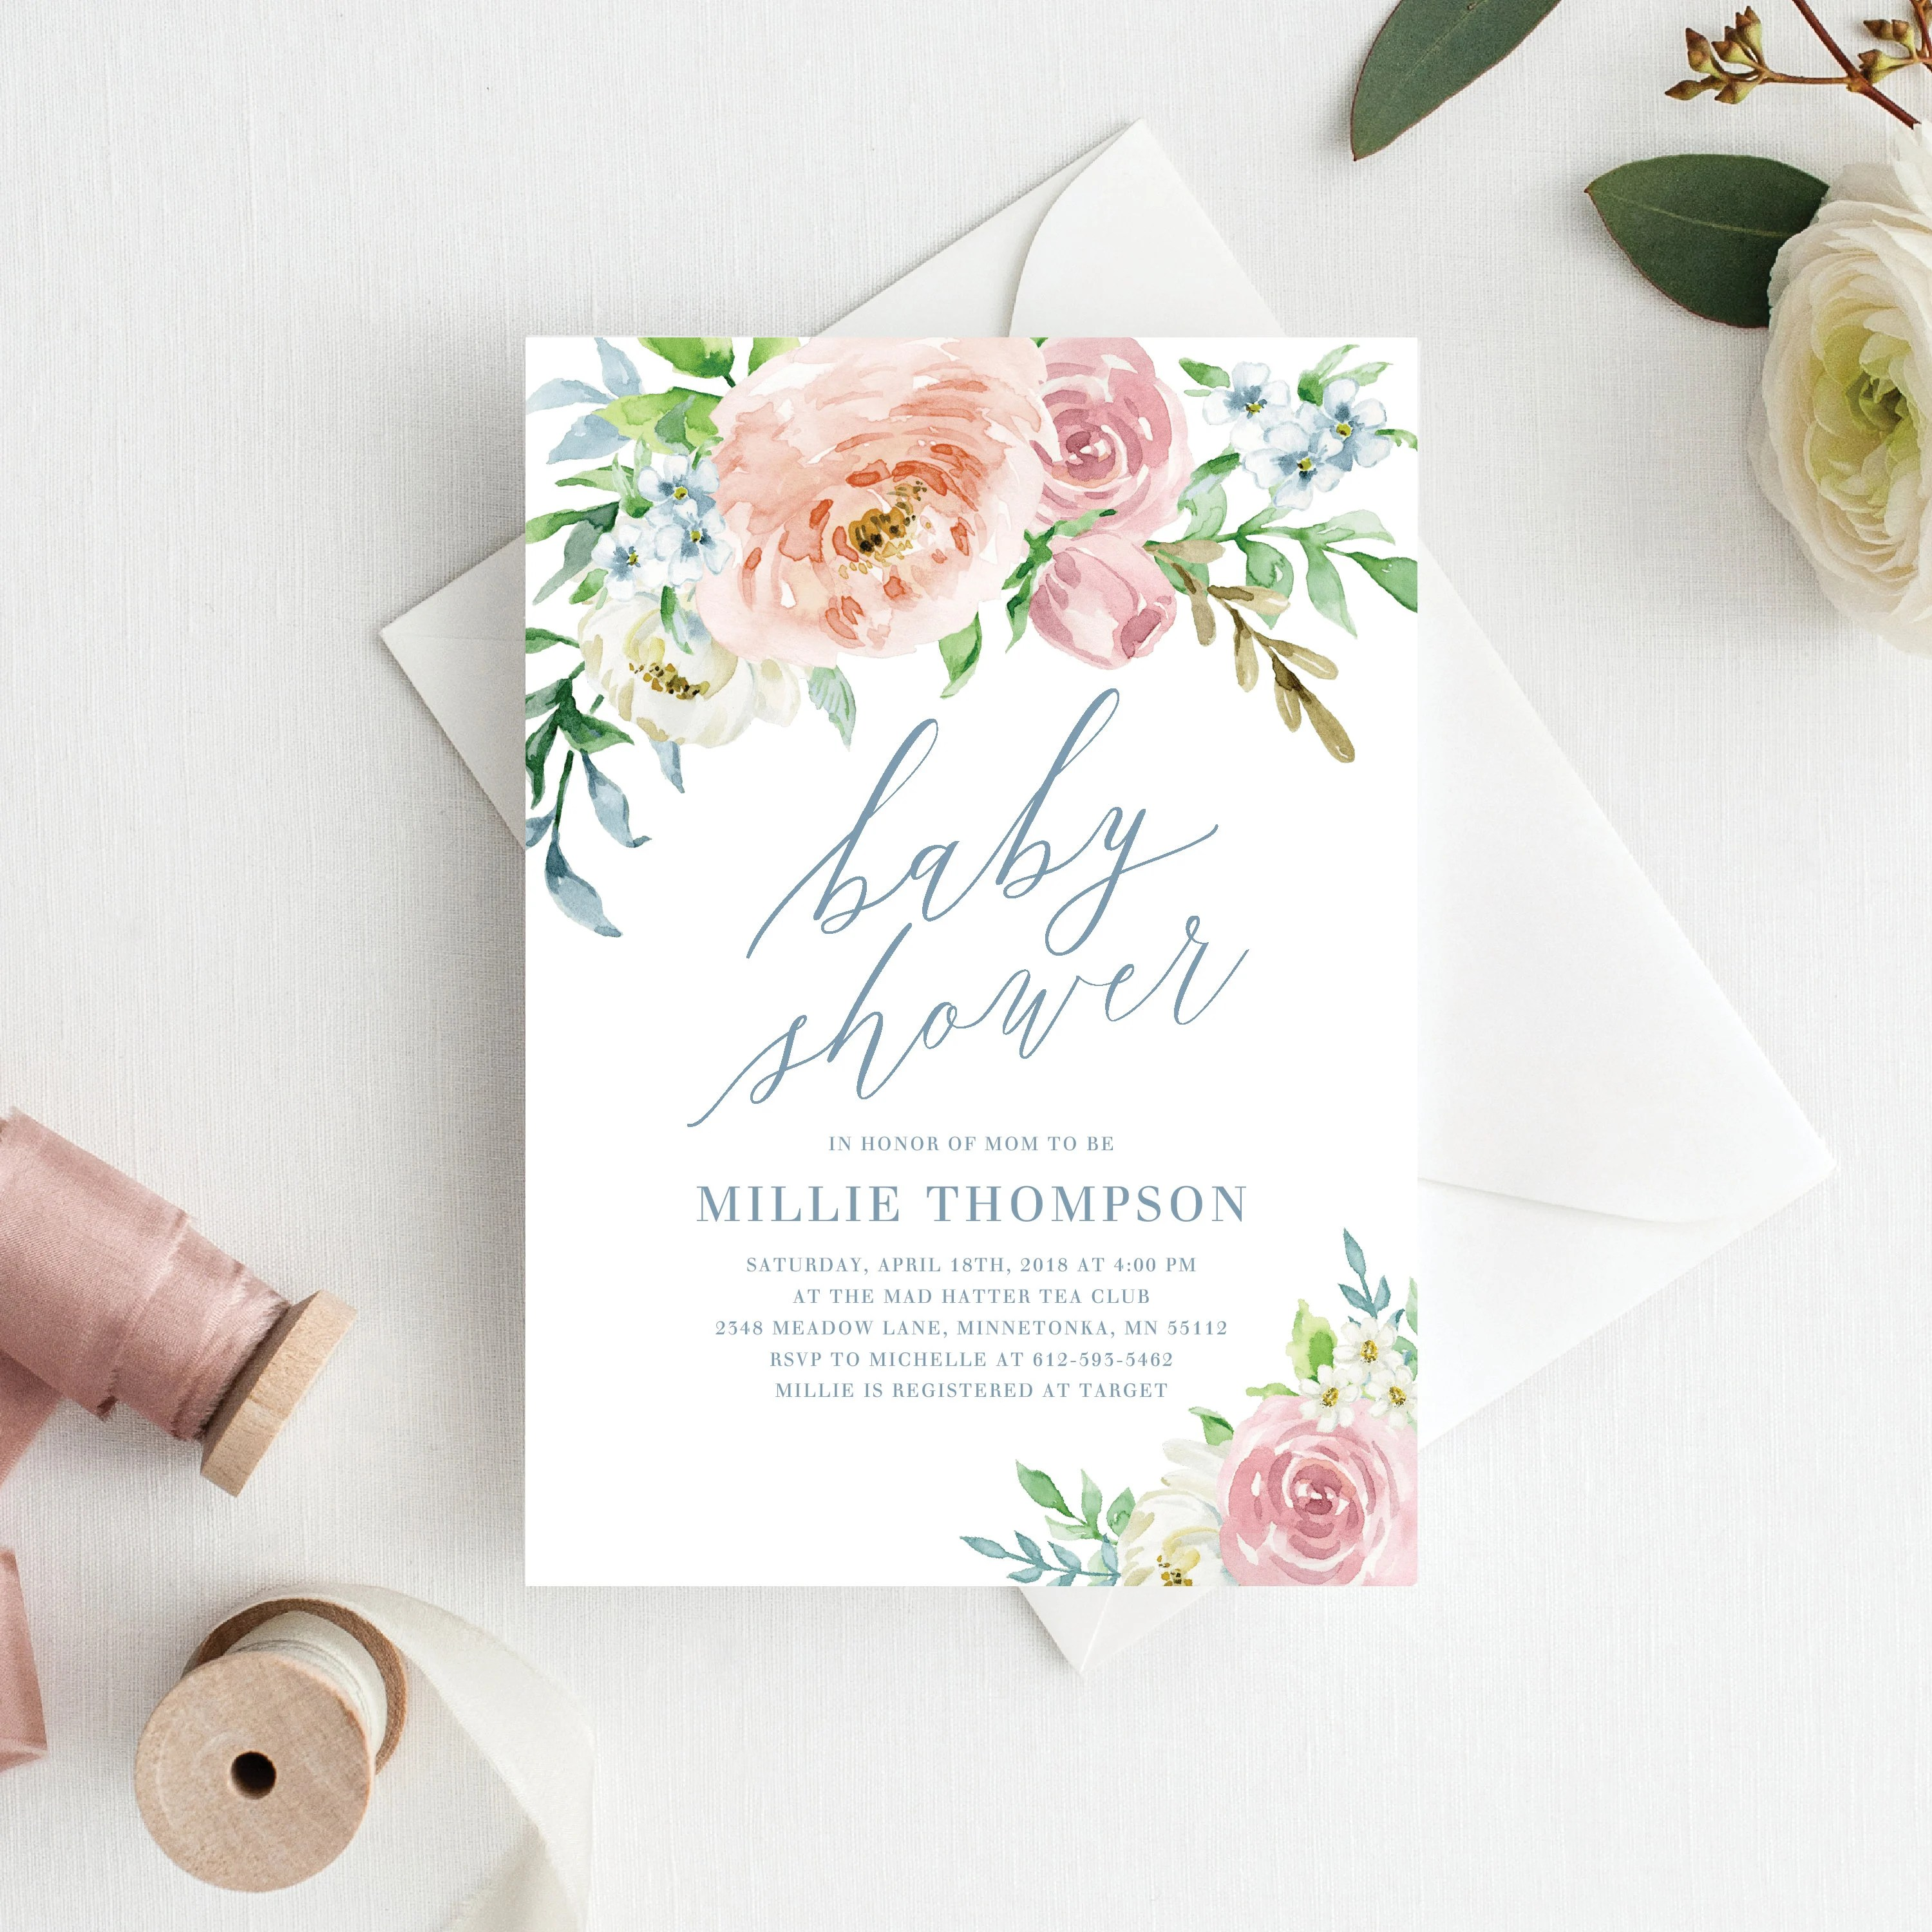 Floral Baby Shower Invitation Template Printable Floral Baby Shower